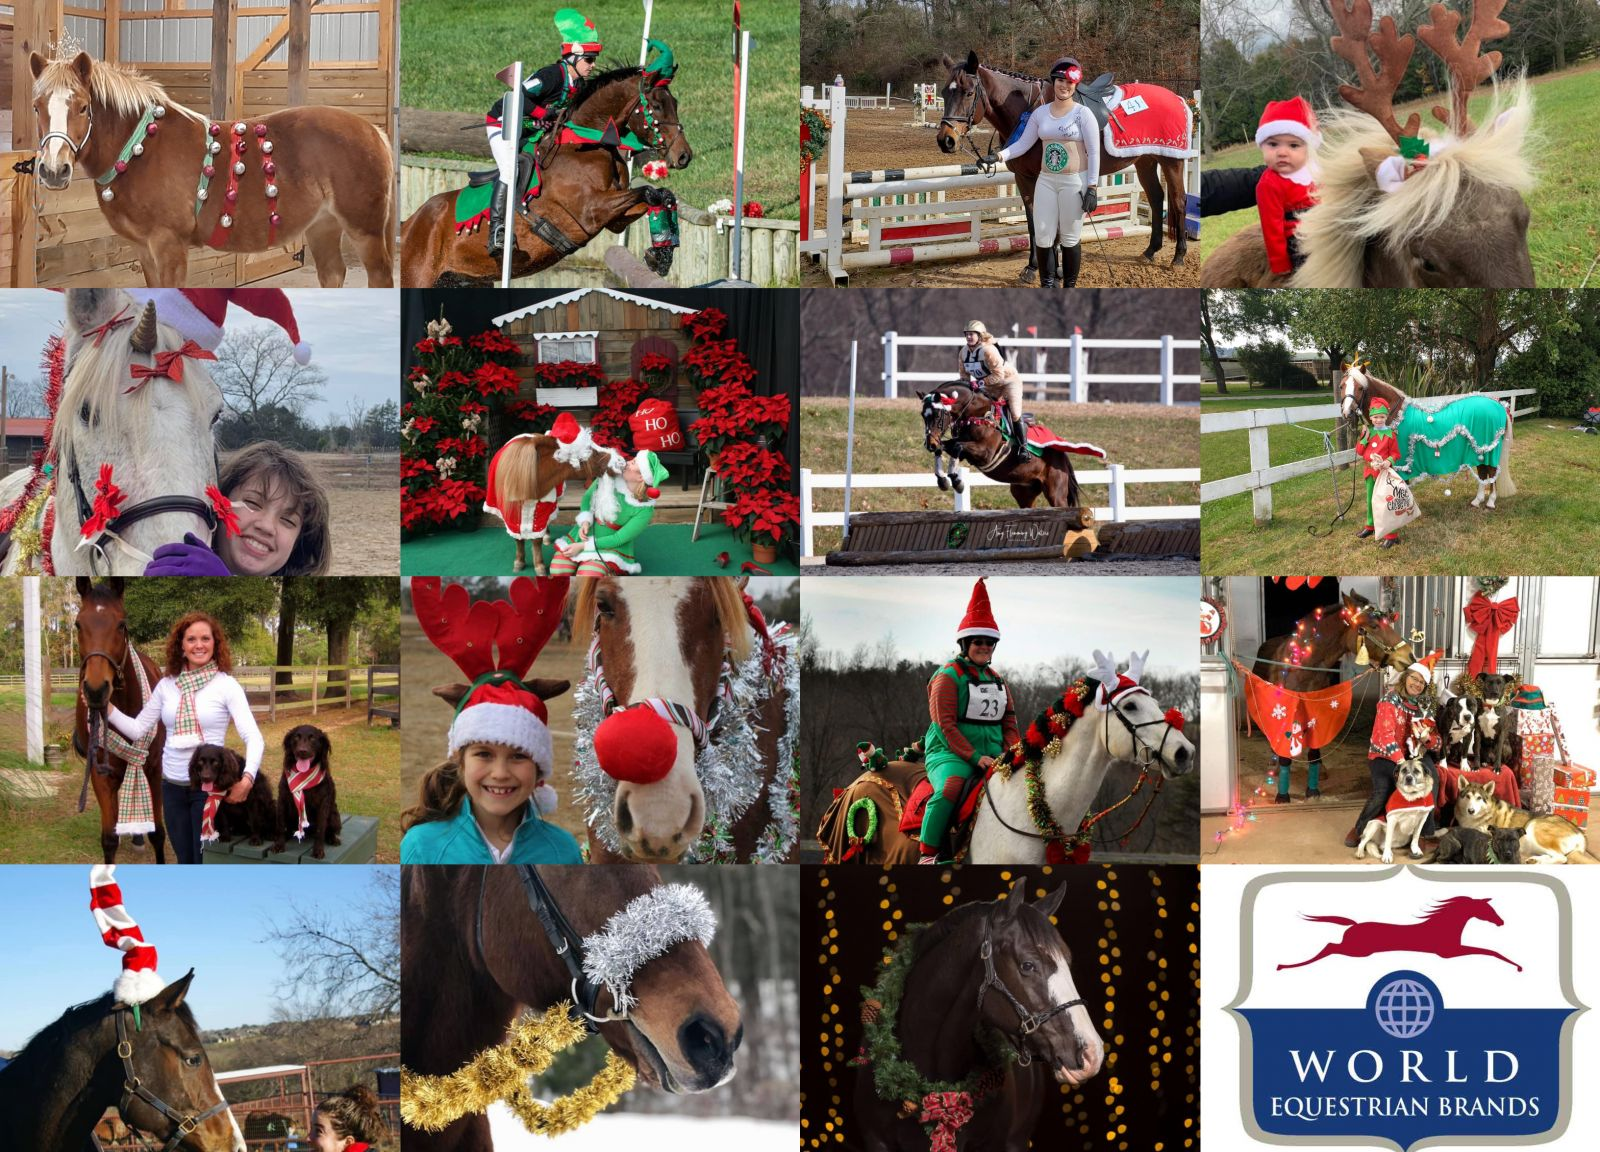 World Equestrian Brands Holiday Horse Costume Contest Top 15 Finalists Eventing Nation Three Day Eventing News Results Videos And Commentary